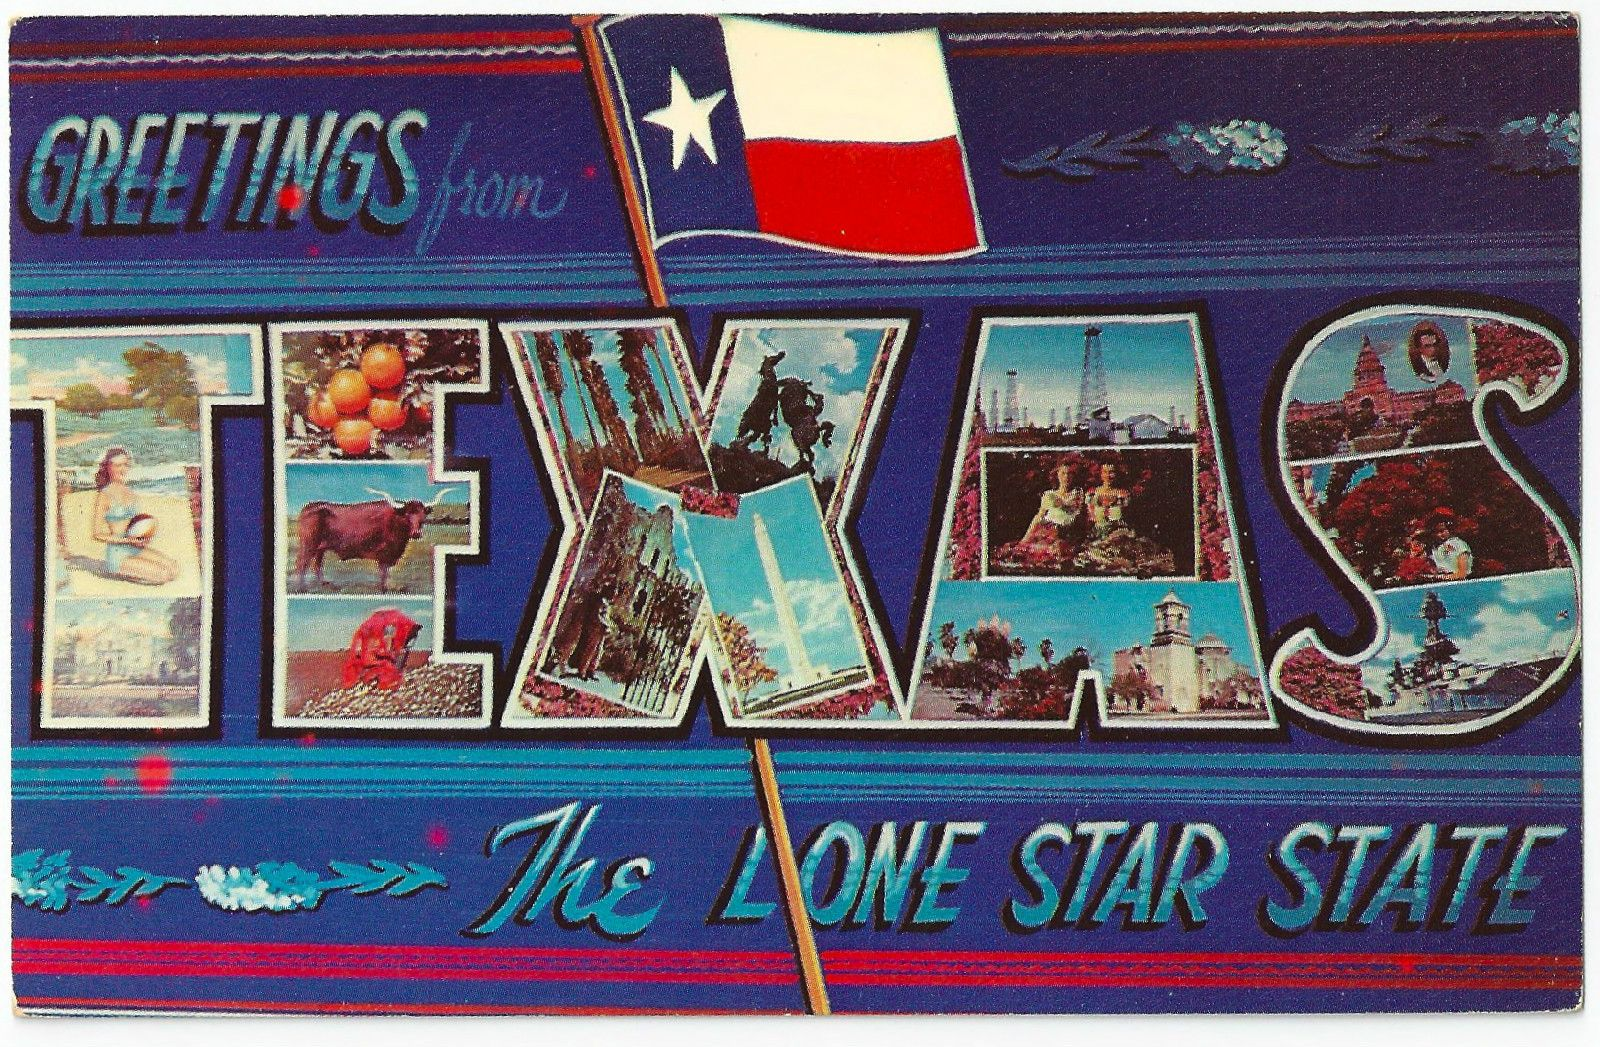 Large letter postcard greetings from texas the lone star state large letter postcard greetings from texas the lone star state texas flag ebay kristyandbryce Choice Image